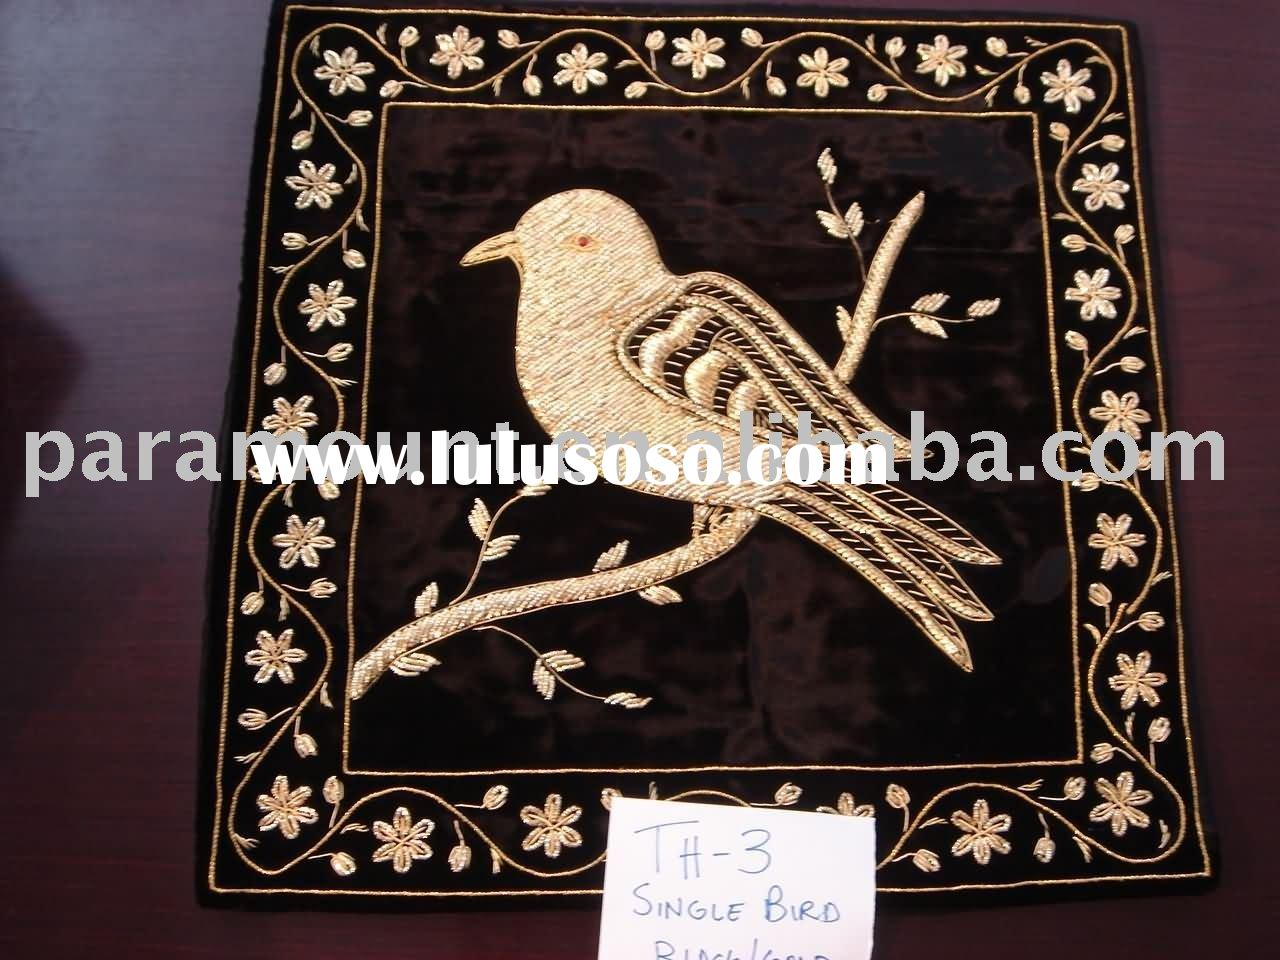 Black velvet handmade gold metallic thread single bird design cushion cover